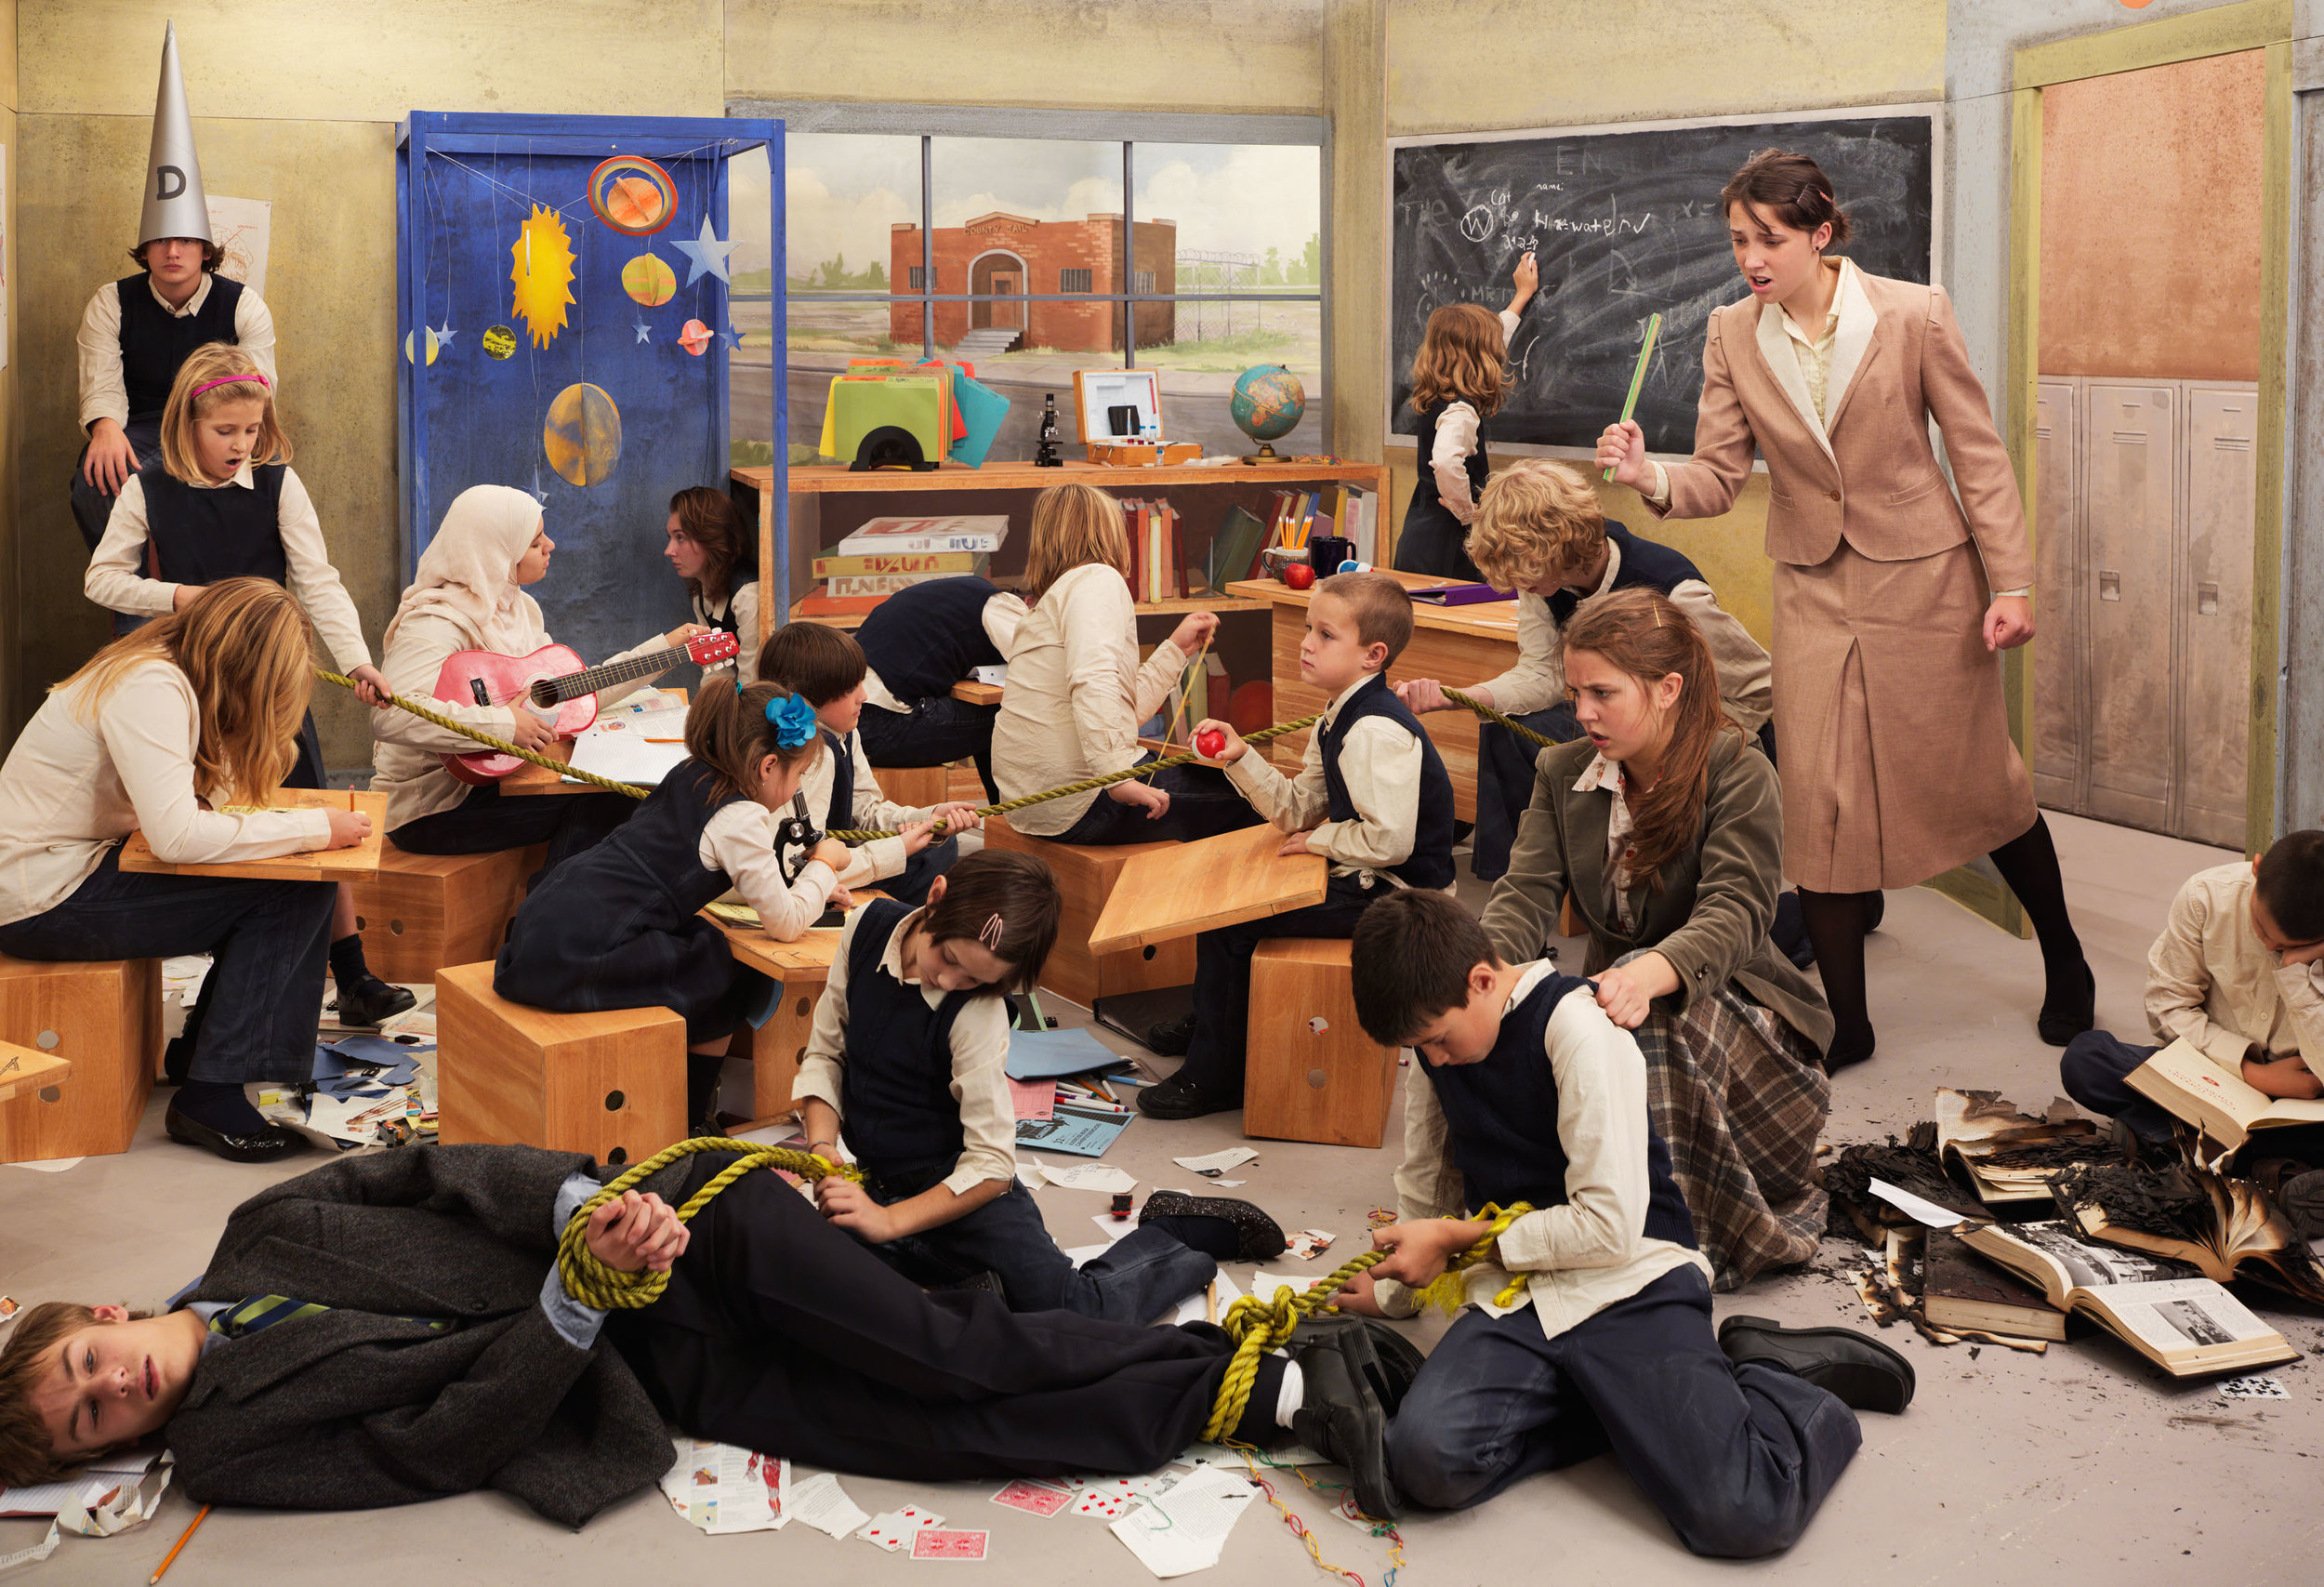 The Diversions (Full Classroom)   2012, archival pigment print. 75 x 100.5 cm / 27 x 39.5 in. Edition of 3 Produced with the assistance of the Judith & Norman Alix Art Gallery